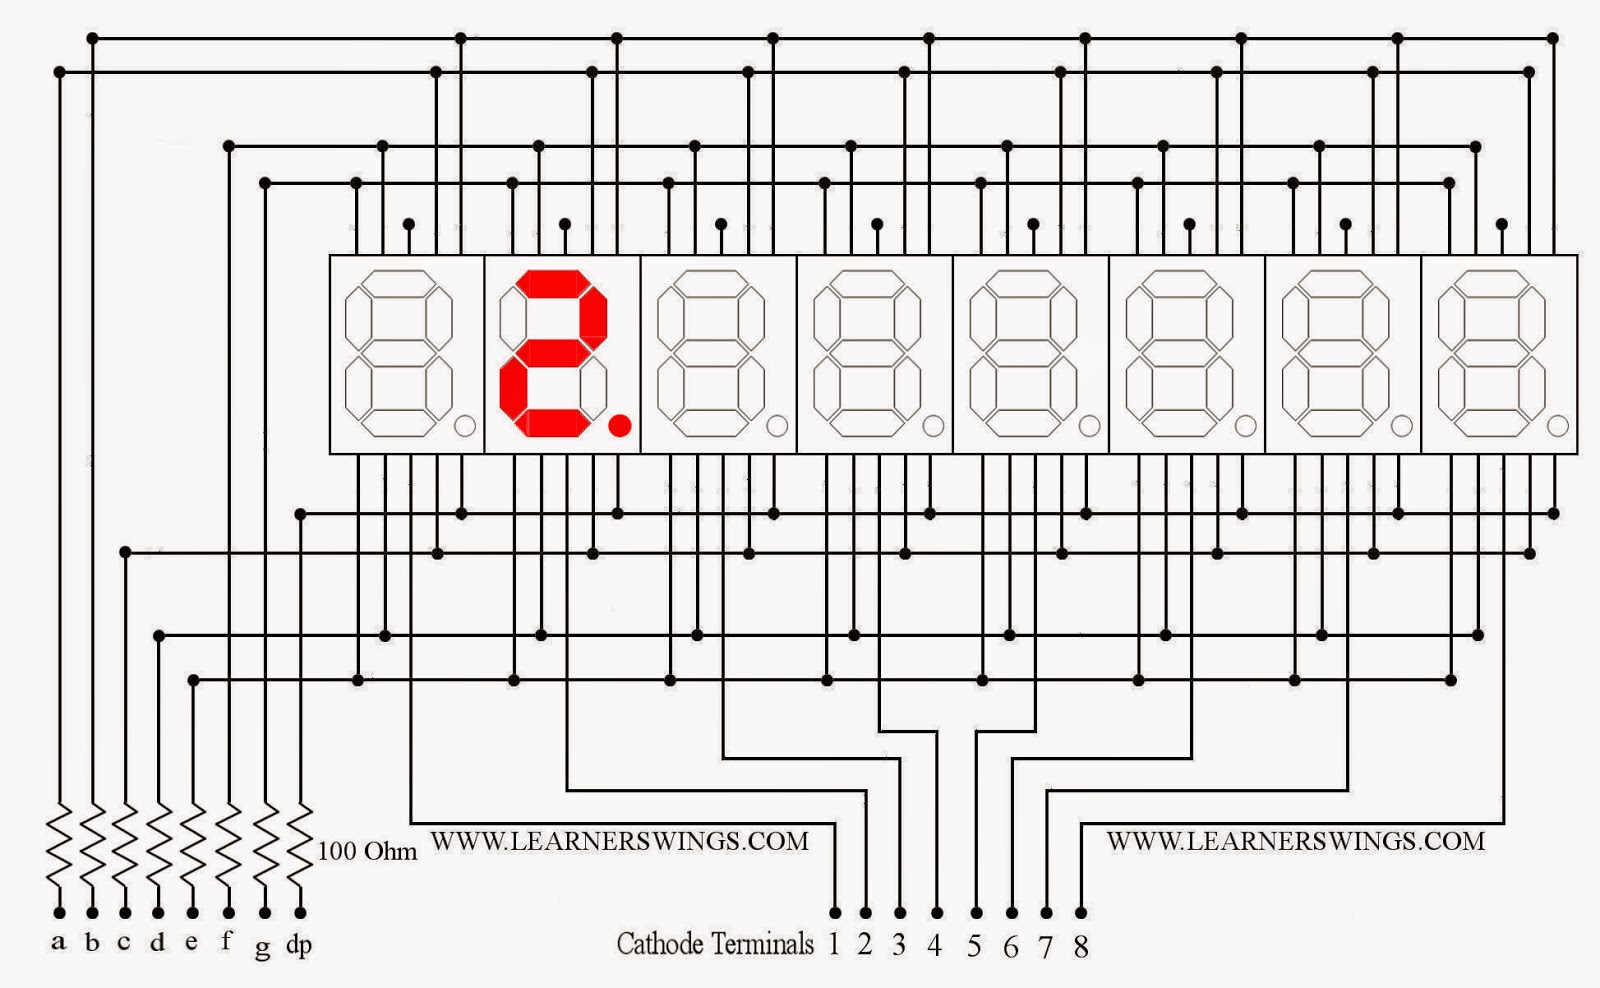 Program To Display In 8 Seven Segment Displays Using Arduino Part 13 Of 16 Funny